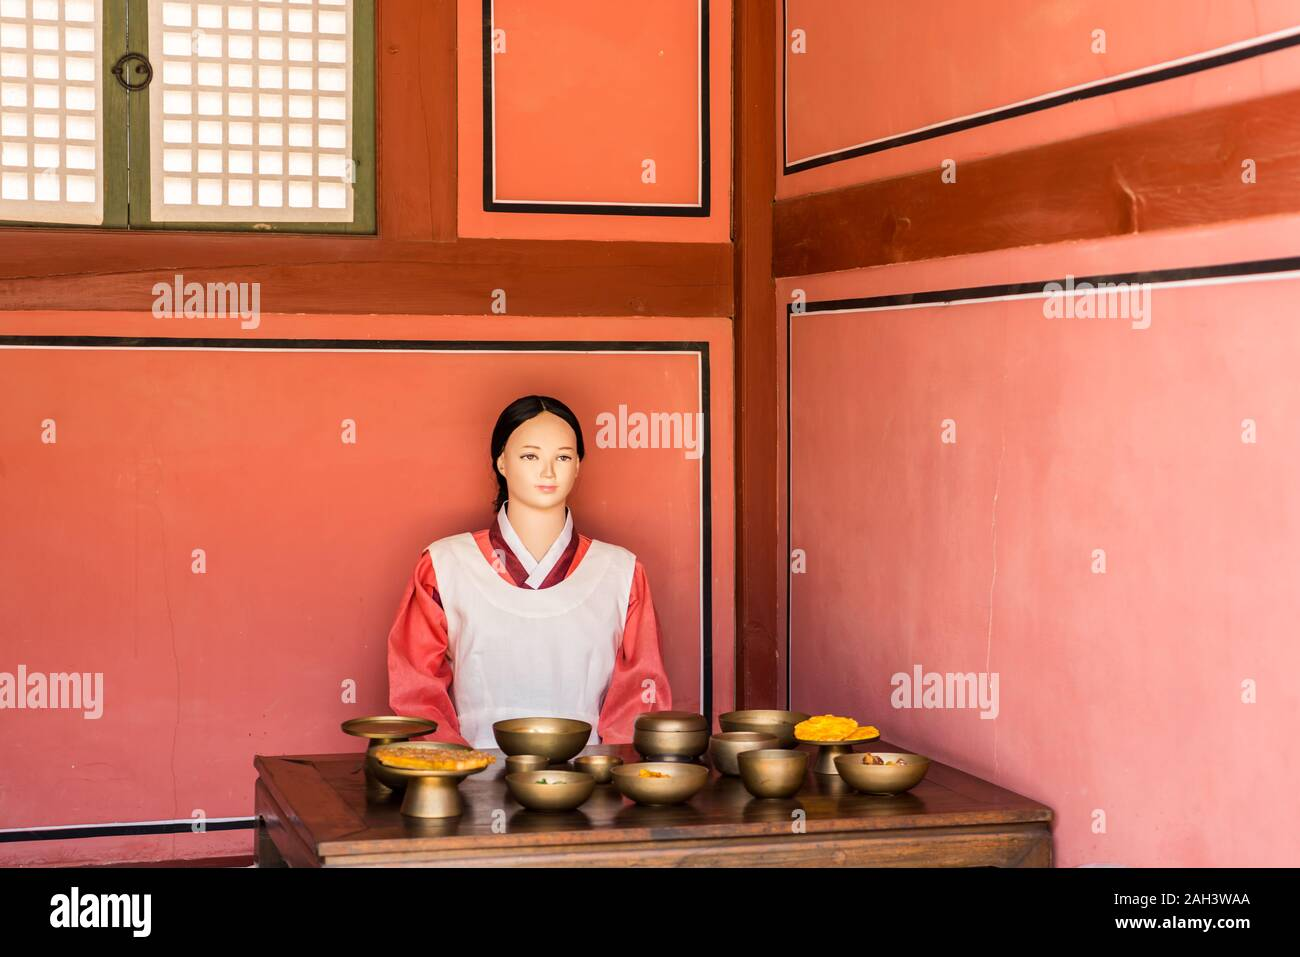 Dressed mannequin of a maid in an imperial palace serving food at  Hwaseong Haenggung Palace, the ornate residential palace built for King Jeongjo whe Stock Photo